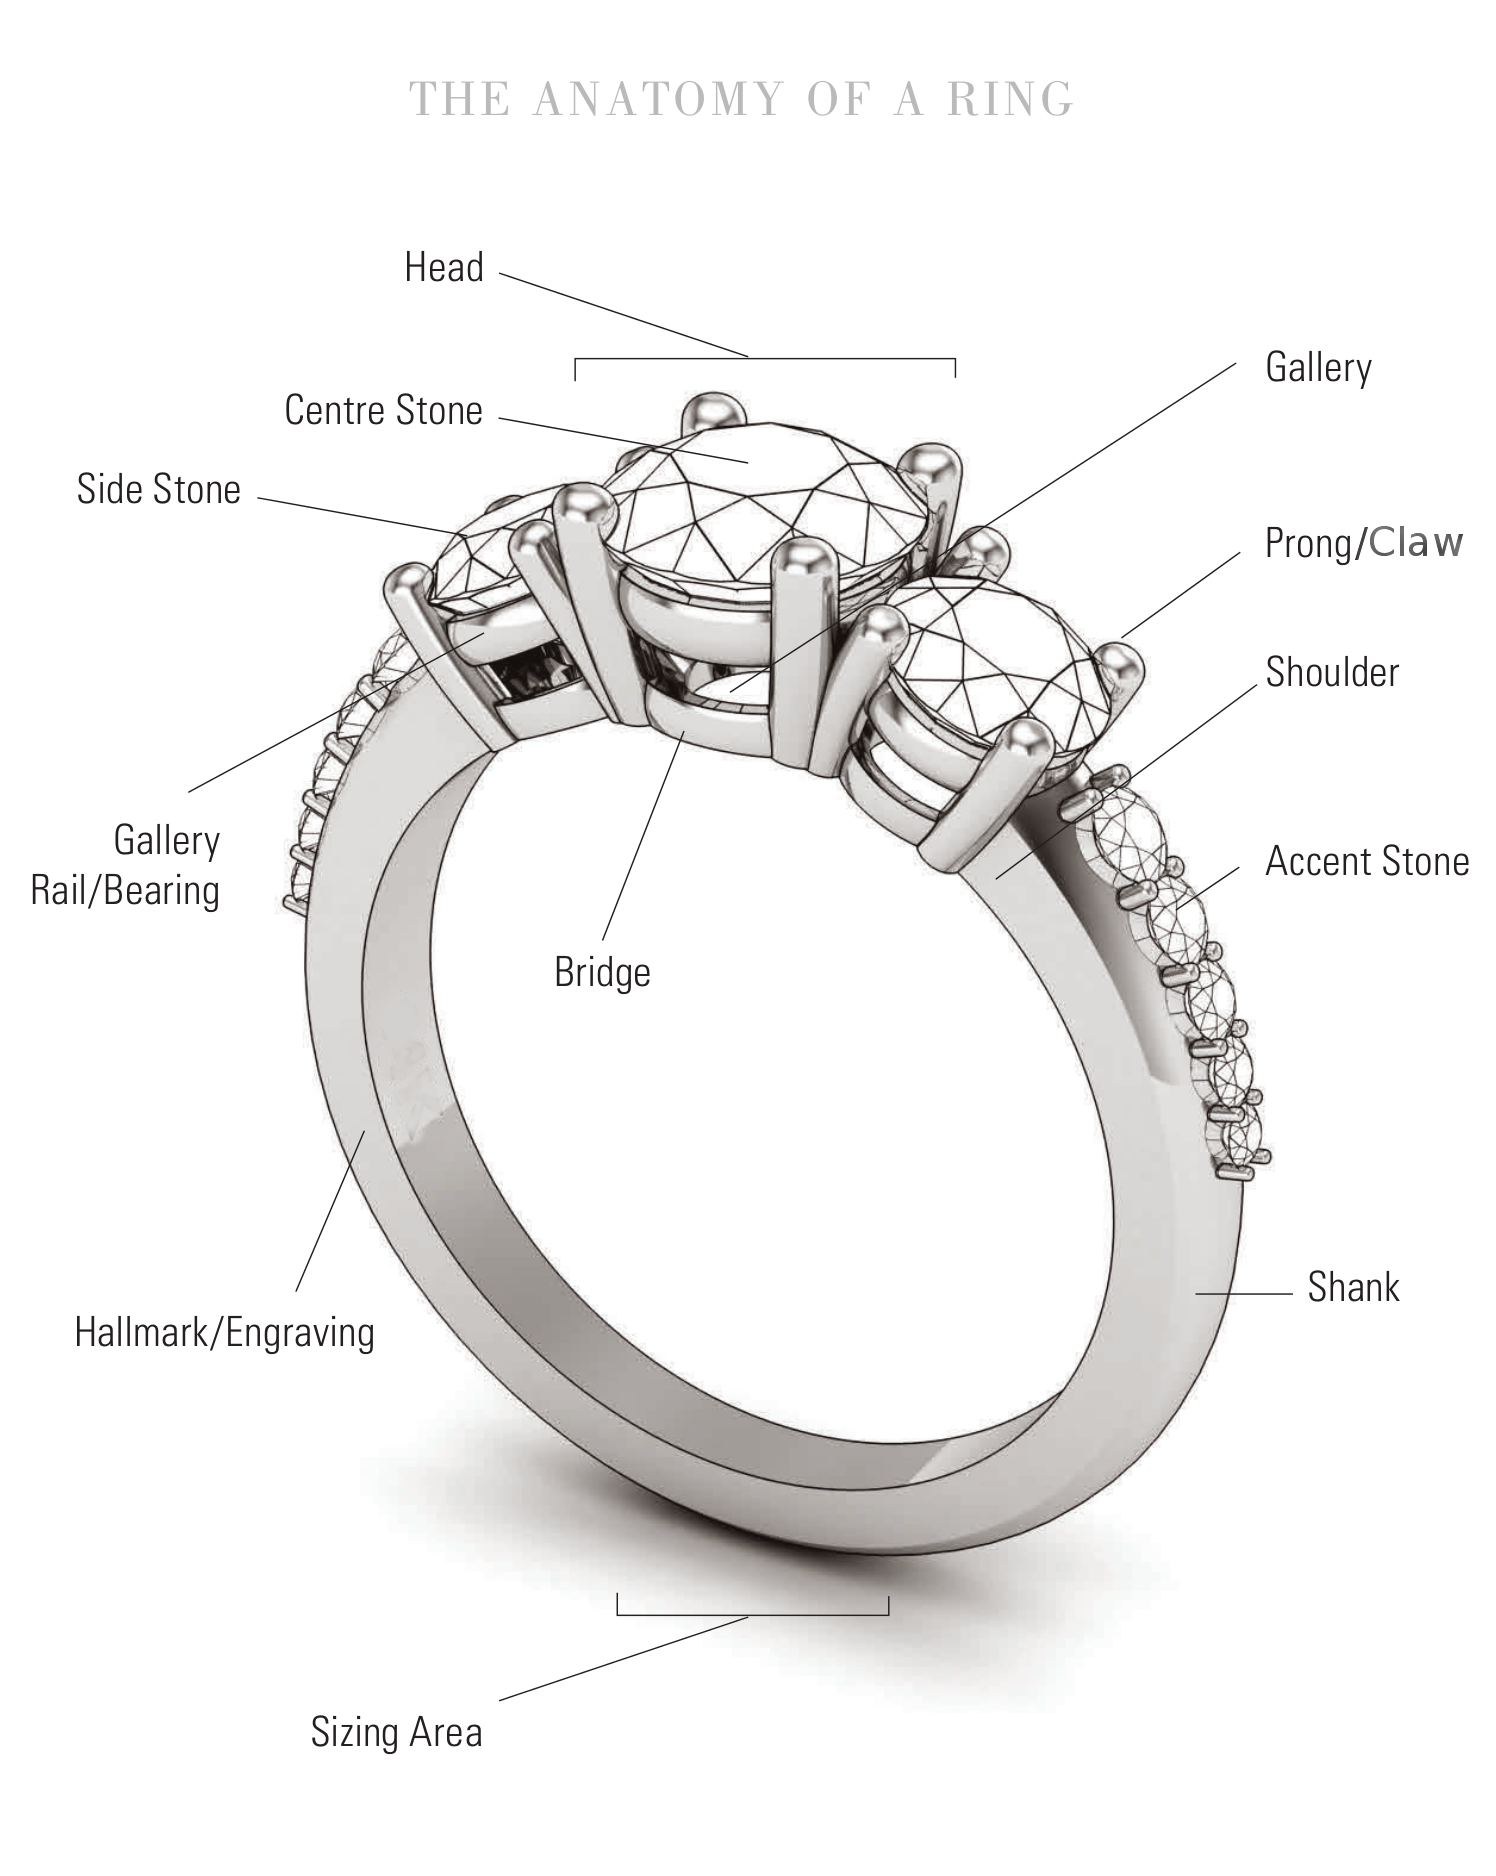 Anatomy of a Ring - Moores Jewellers